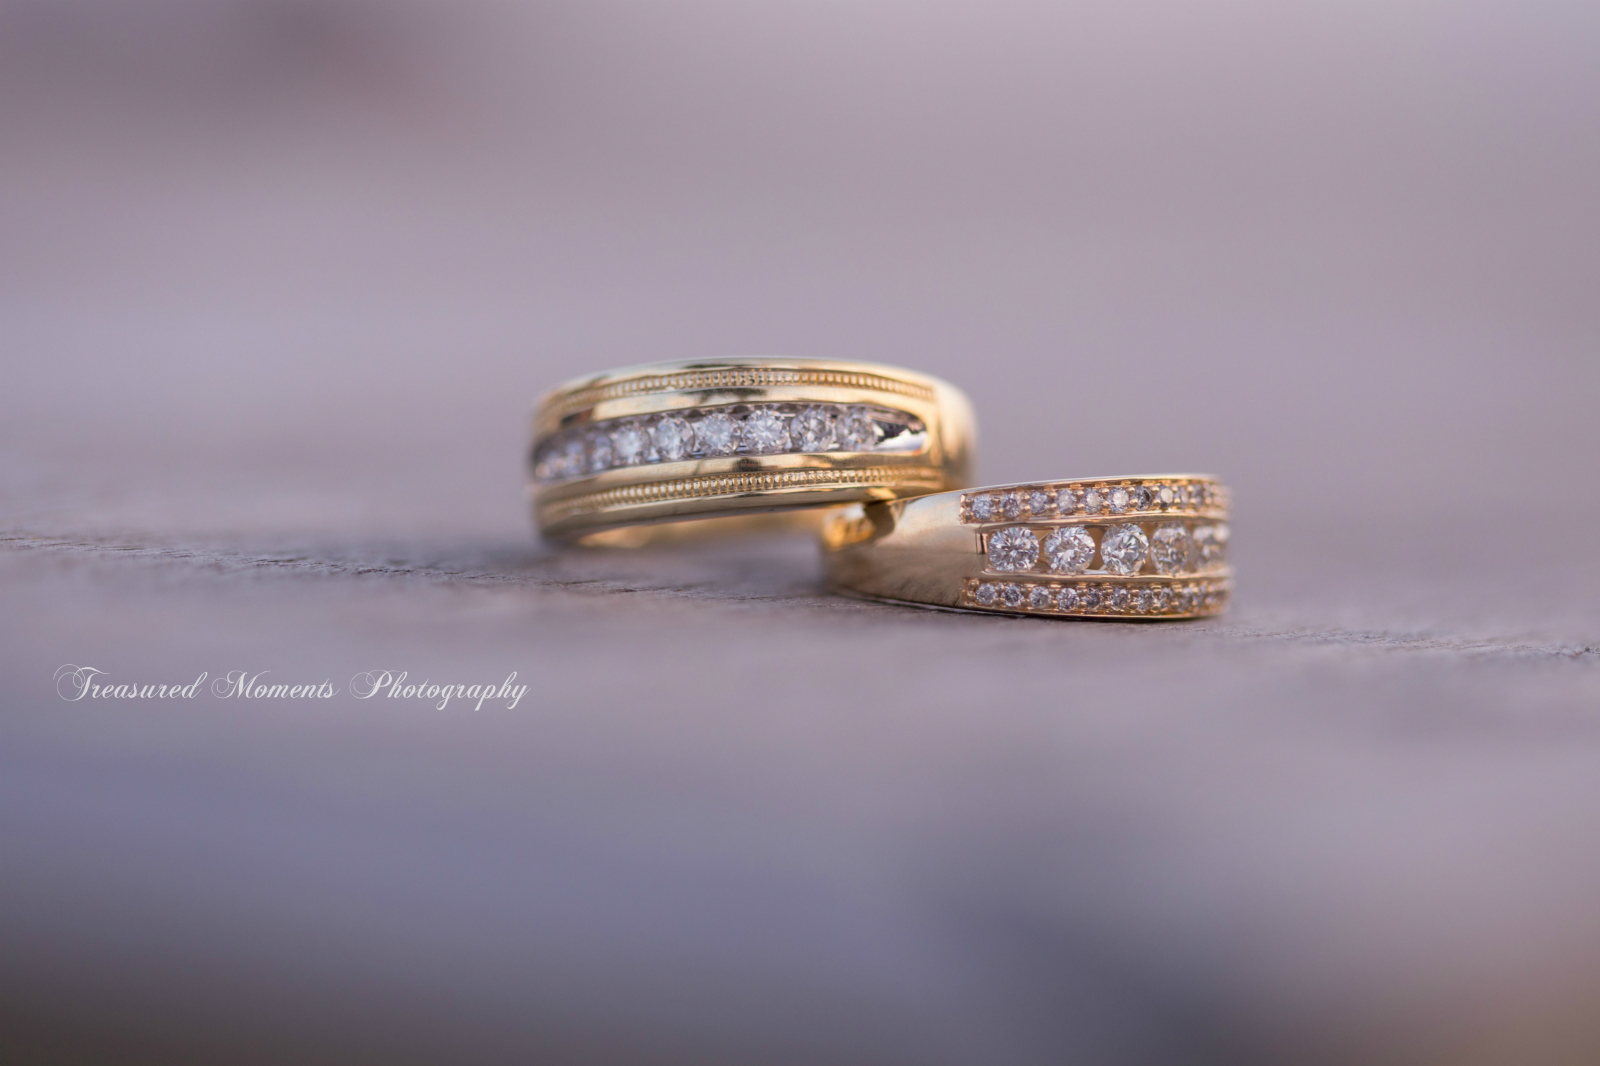 50th Wedding Anniversary Vow Renewal....whatever they are doing, it must be working! Treasured Moments Photography